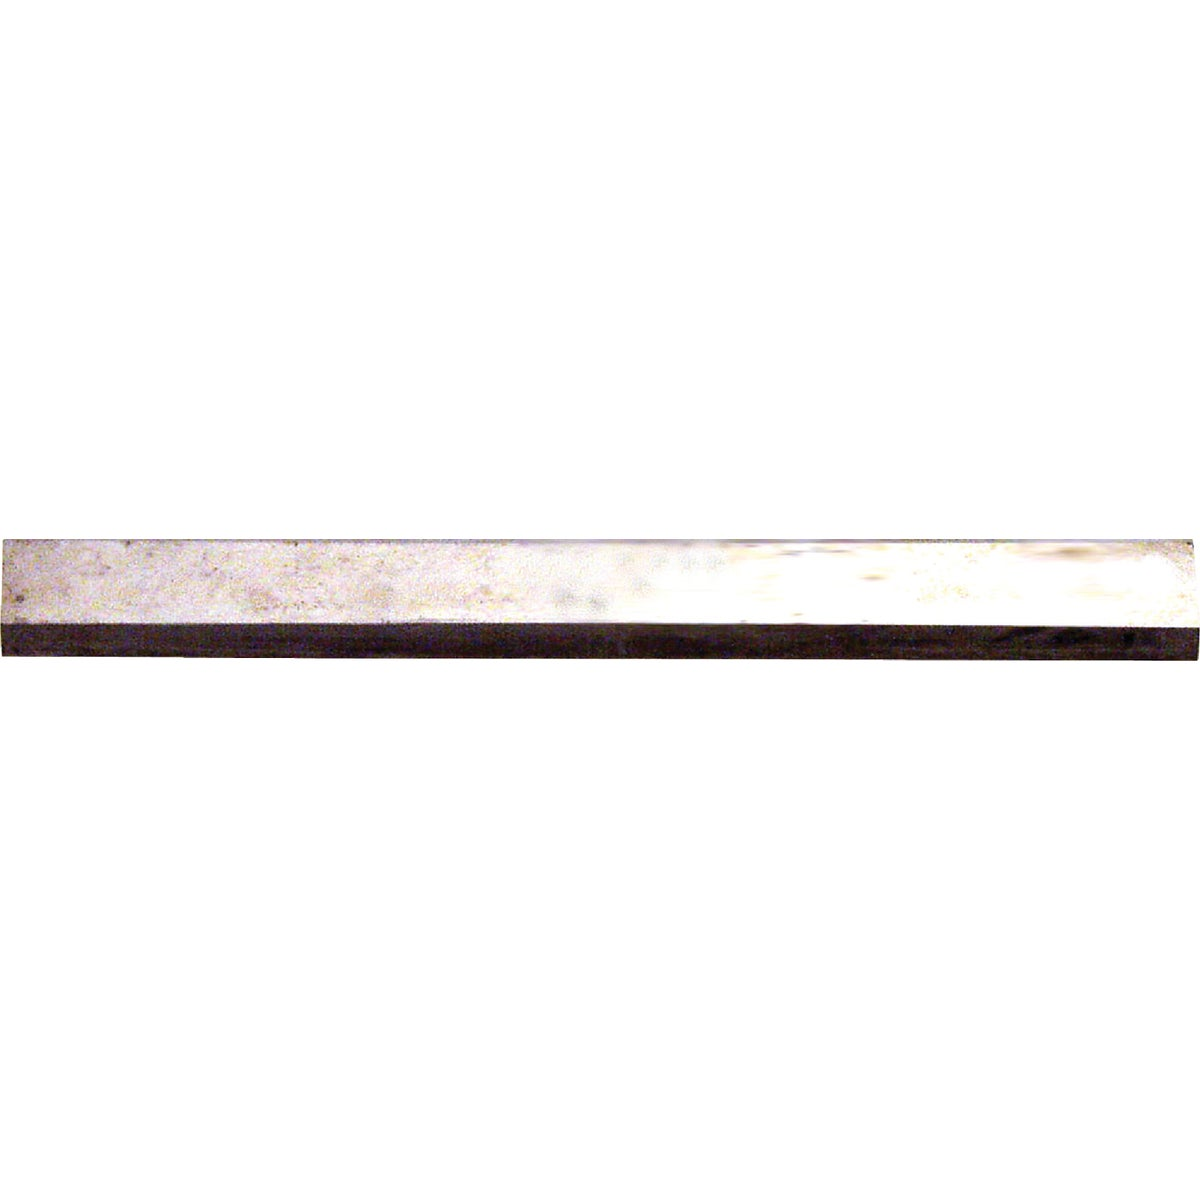 "2-1/2"" CARBIDE BLADE - 11180 by Hyde Mfg Co"